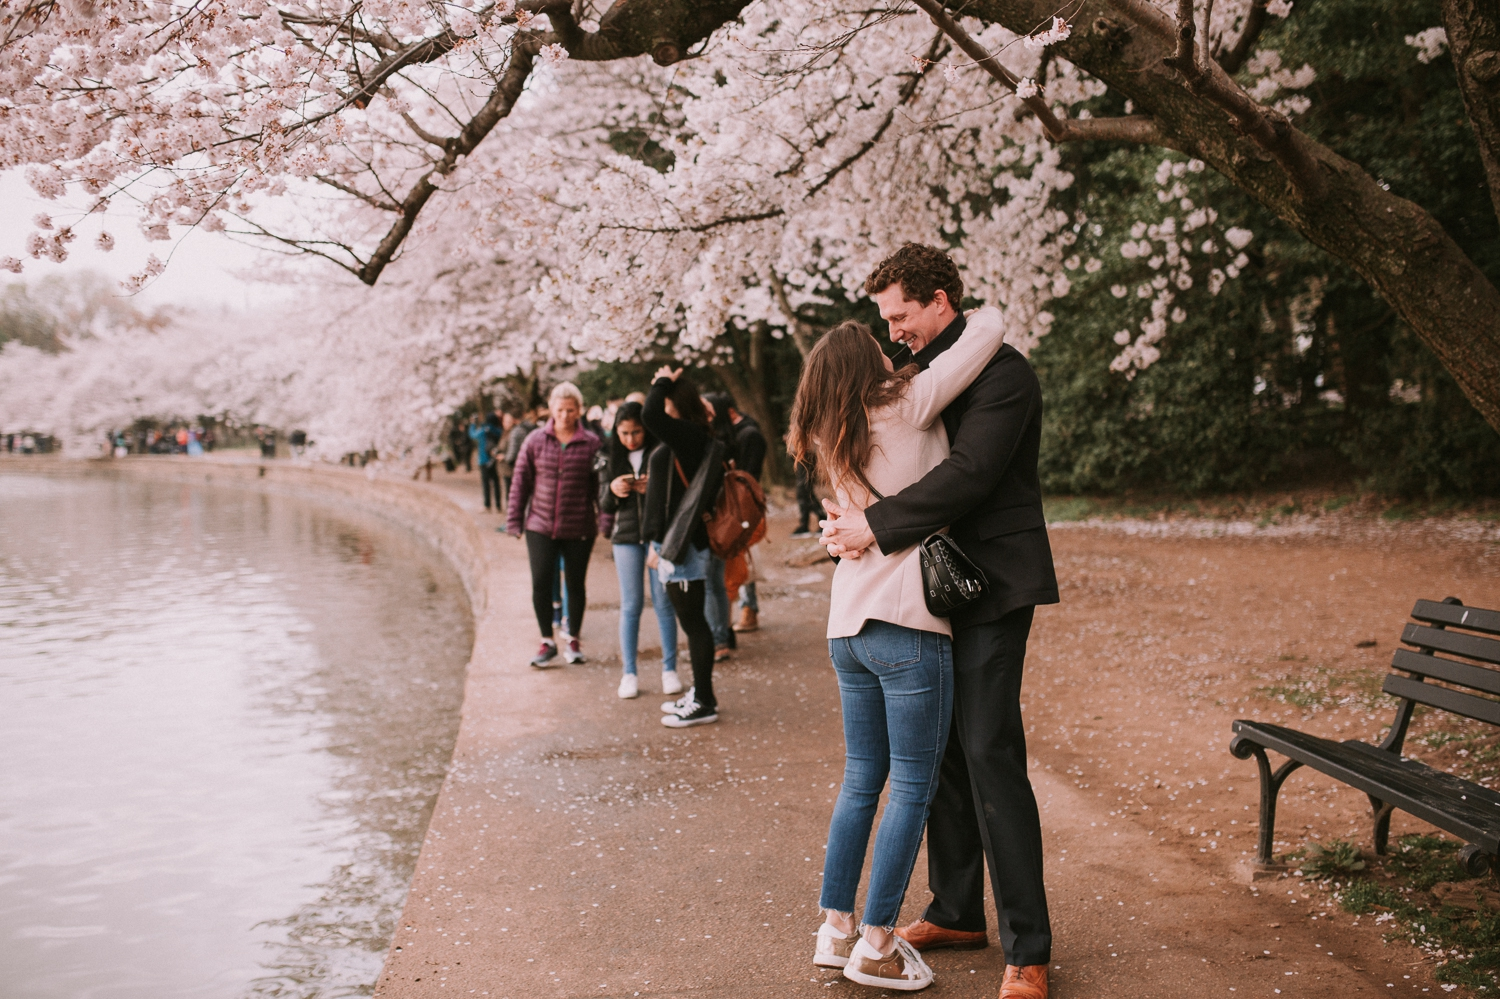 washington-dc-cherry-blossom-tidal-basin-proposal-photographer 7.jpg